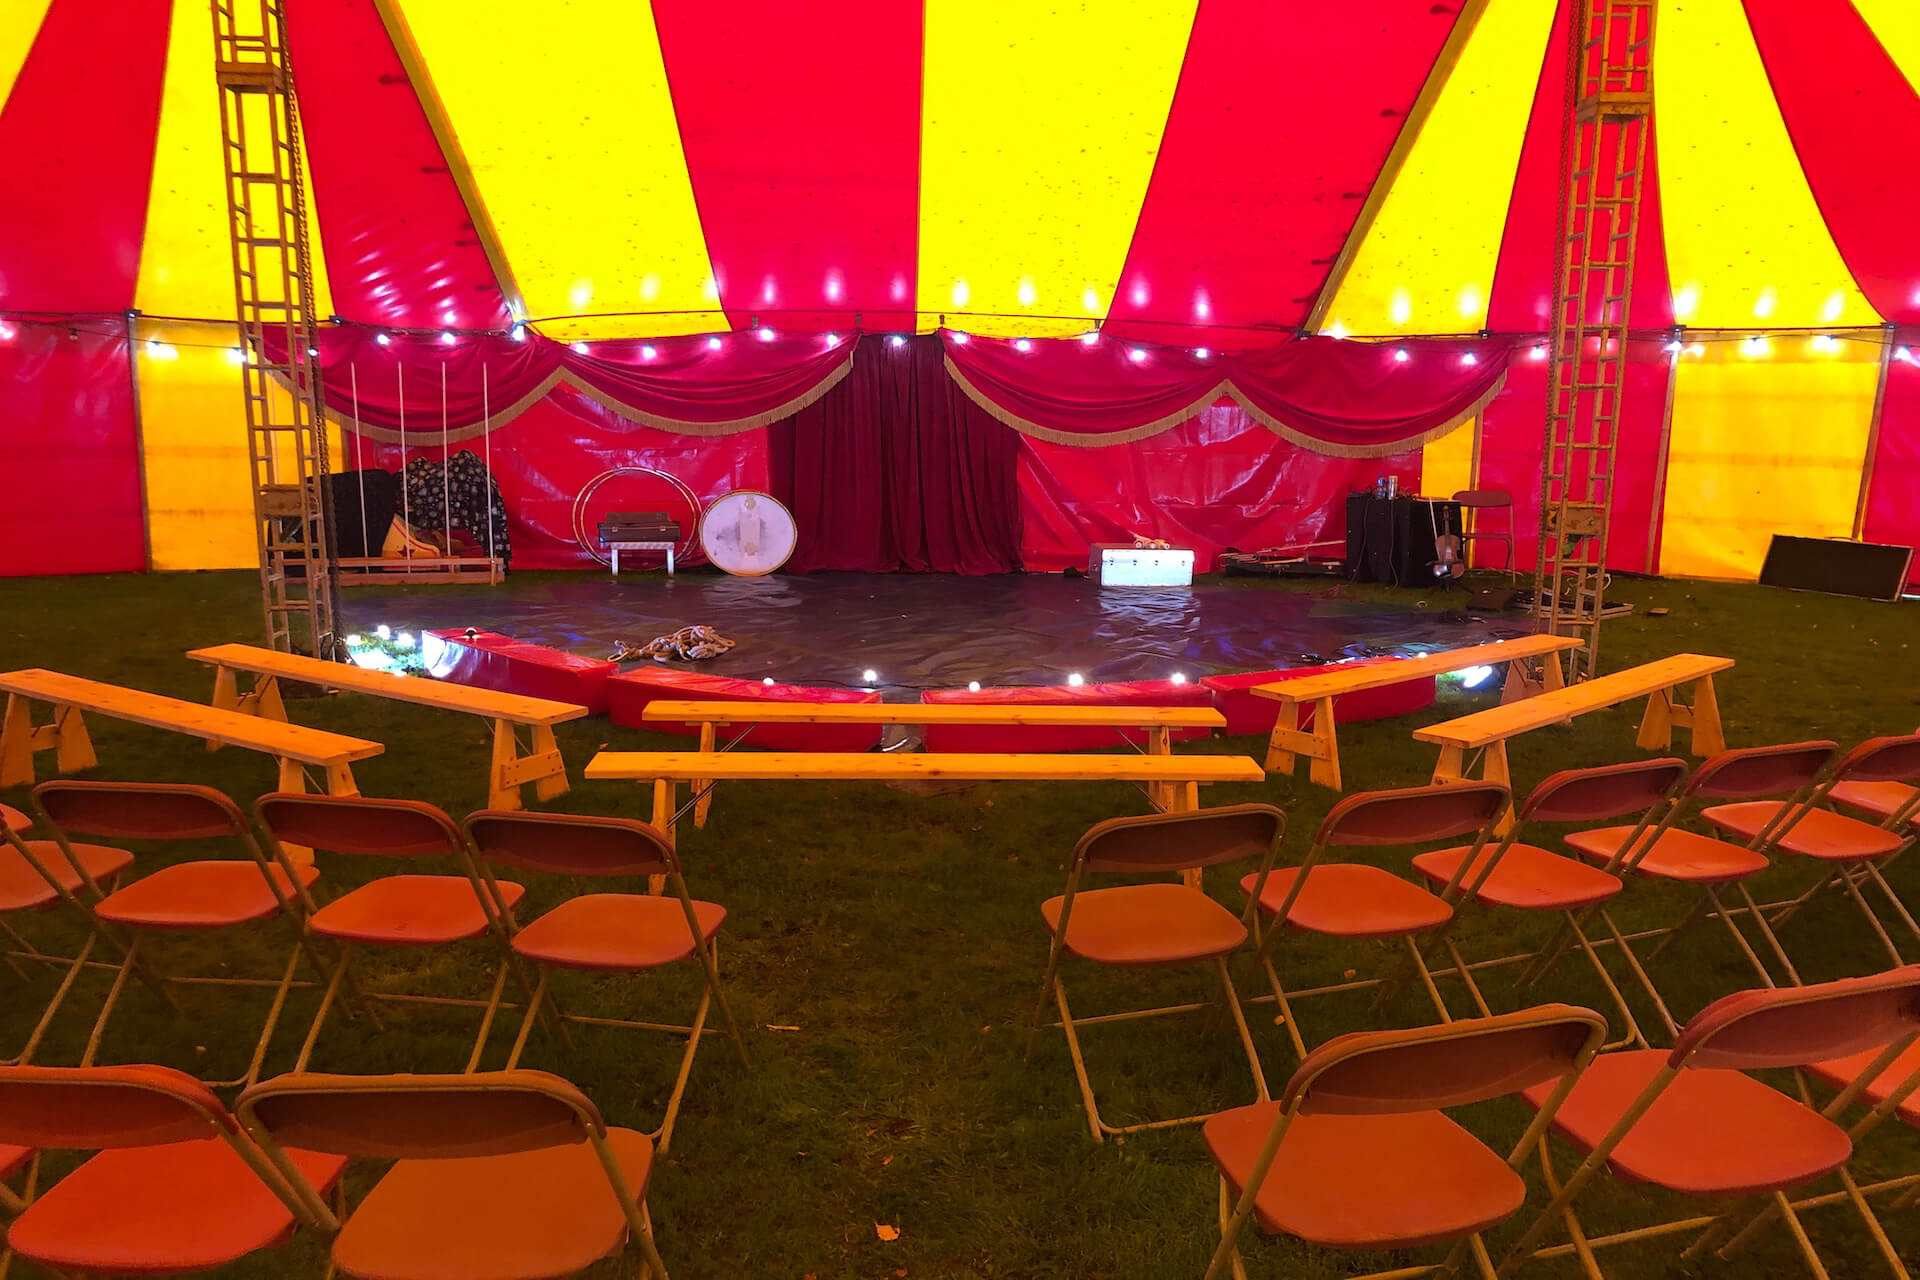 All set up for a Bigtopmania circus show